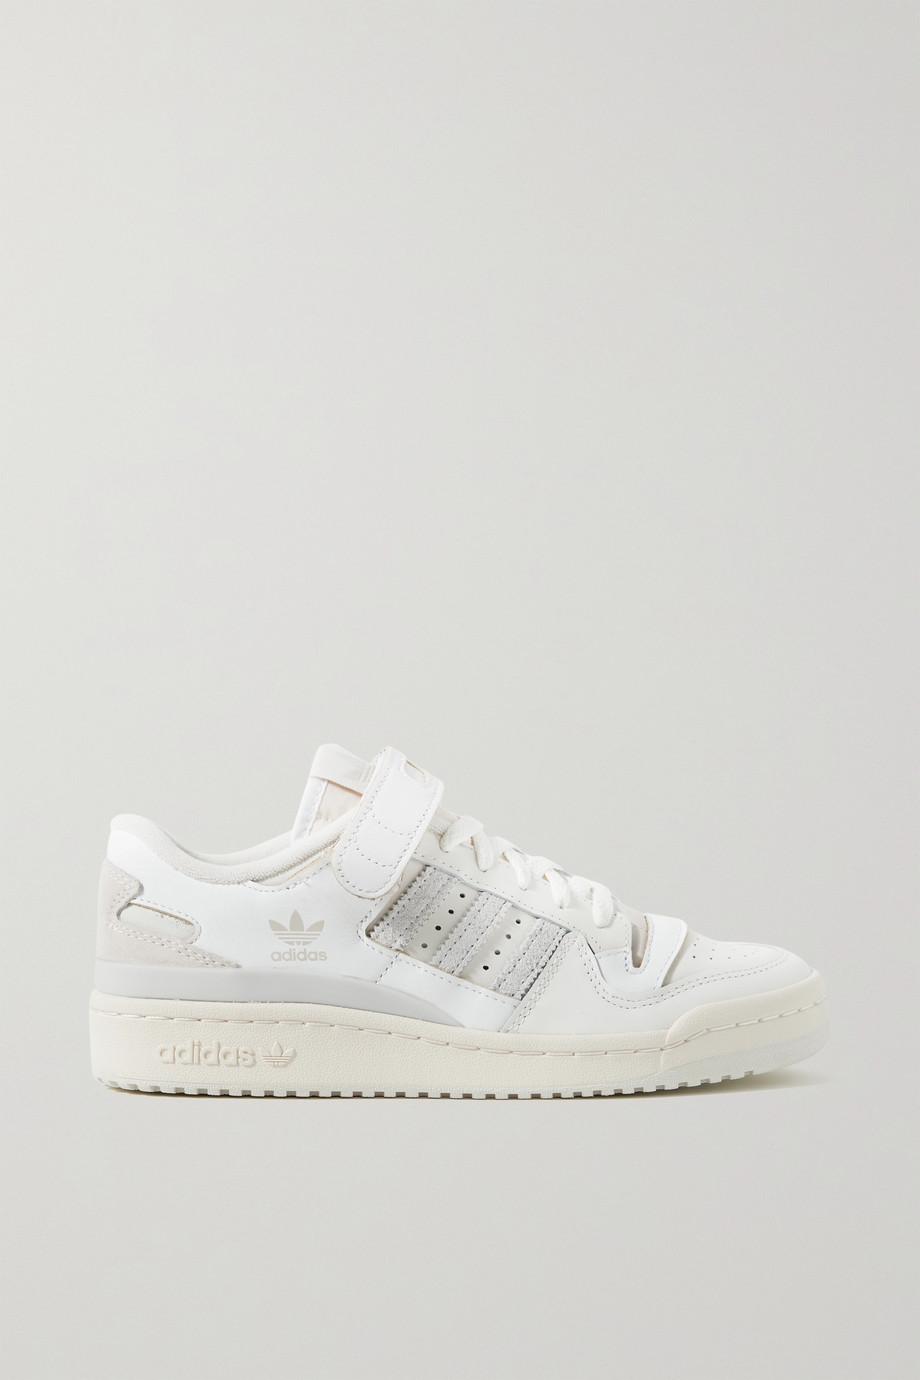 ADIDAS ORIGINALS Forum 84 suede-trimmed leather sneakers